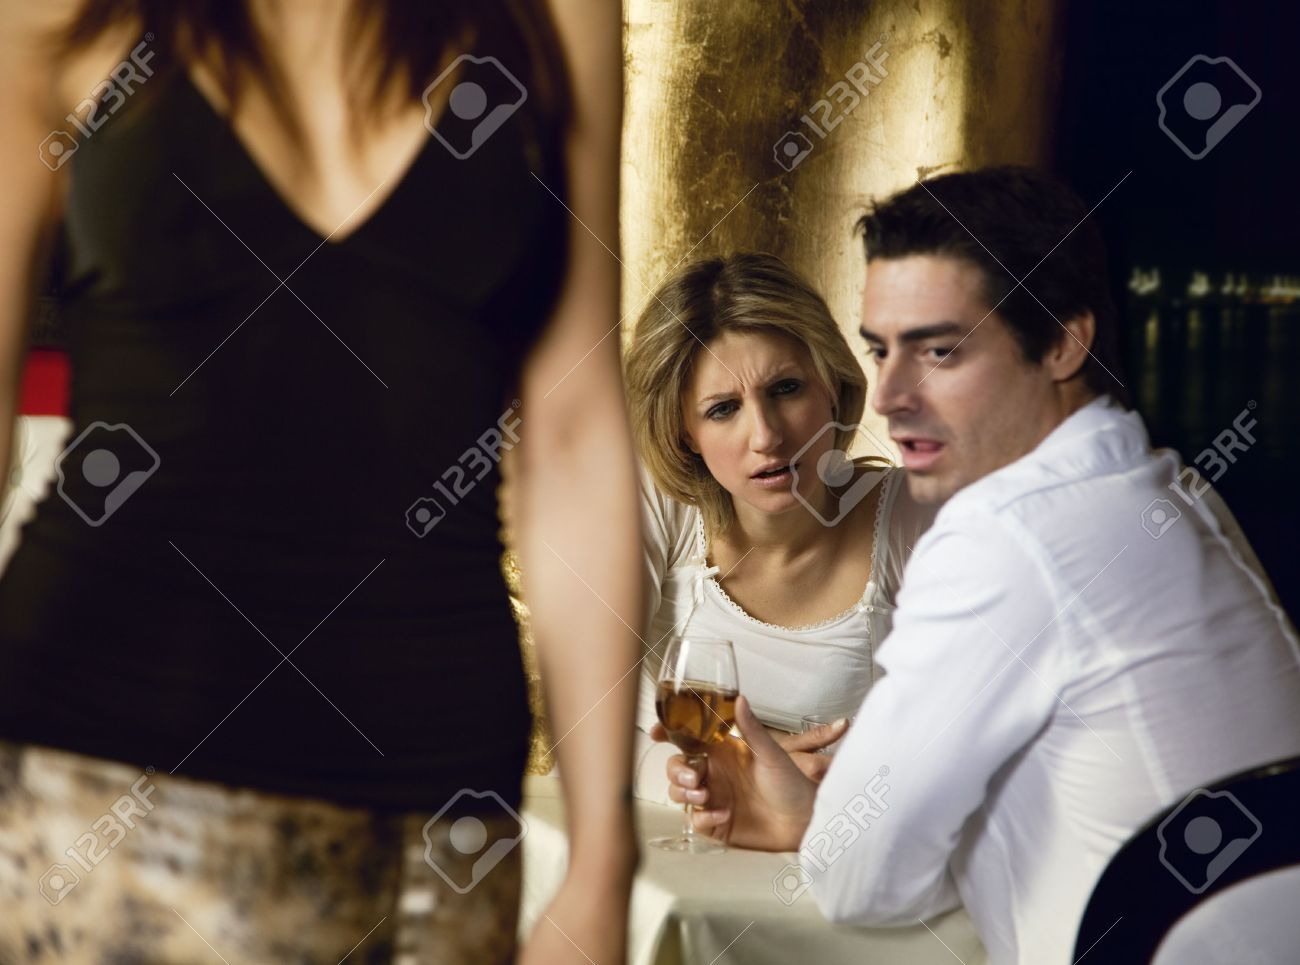 girls night out: horny guy looking at a nice girl passing by...while dining out with his girlfriend! Stock Photo - 888933